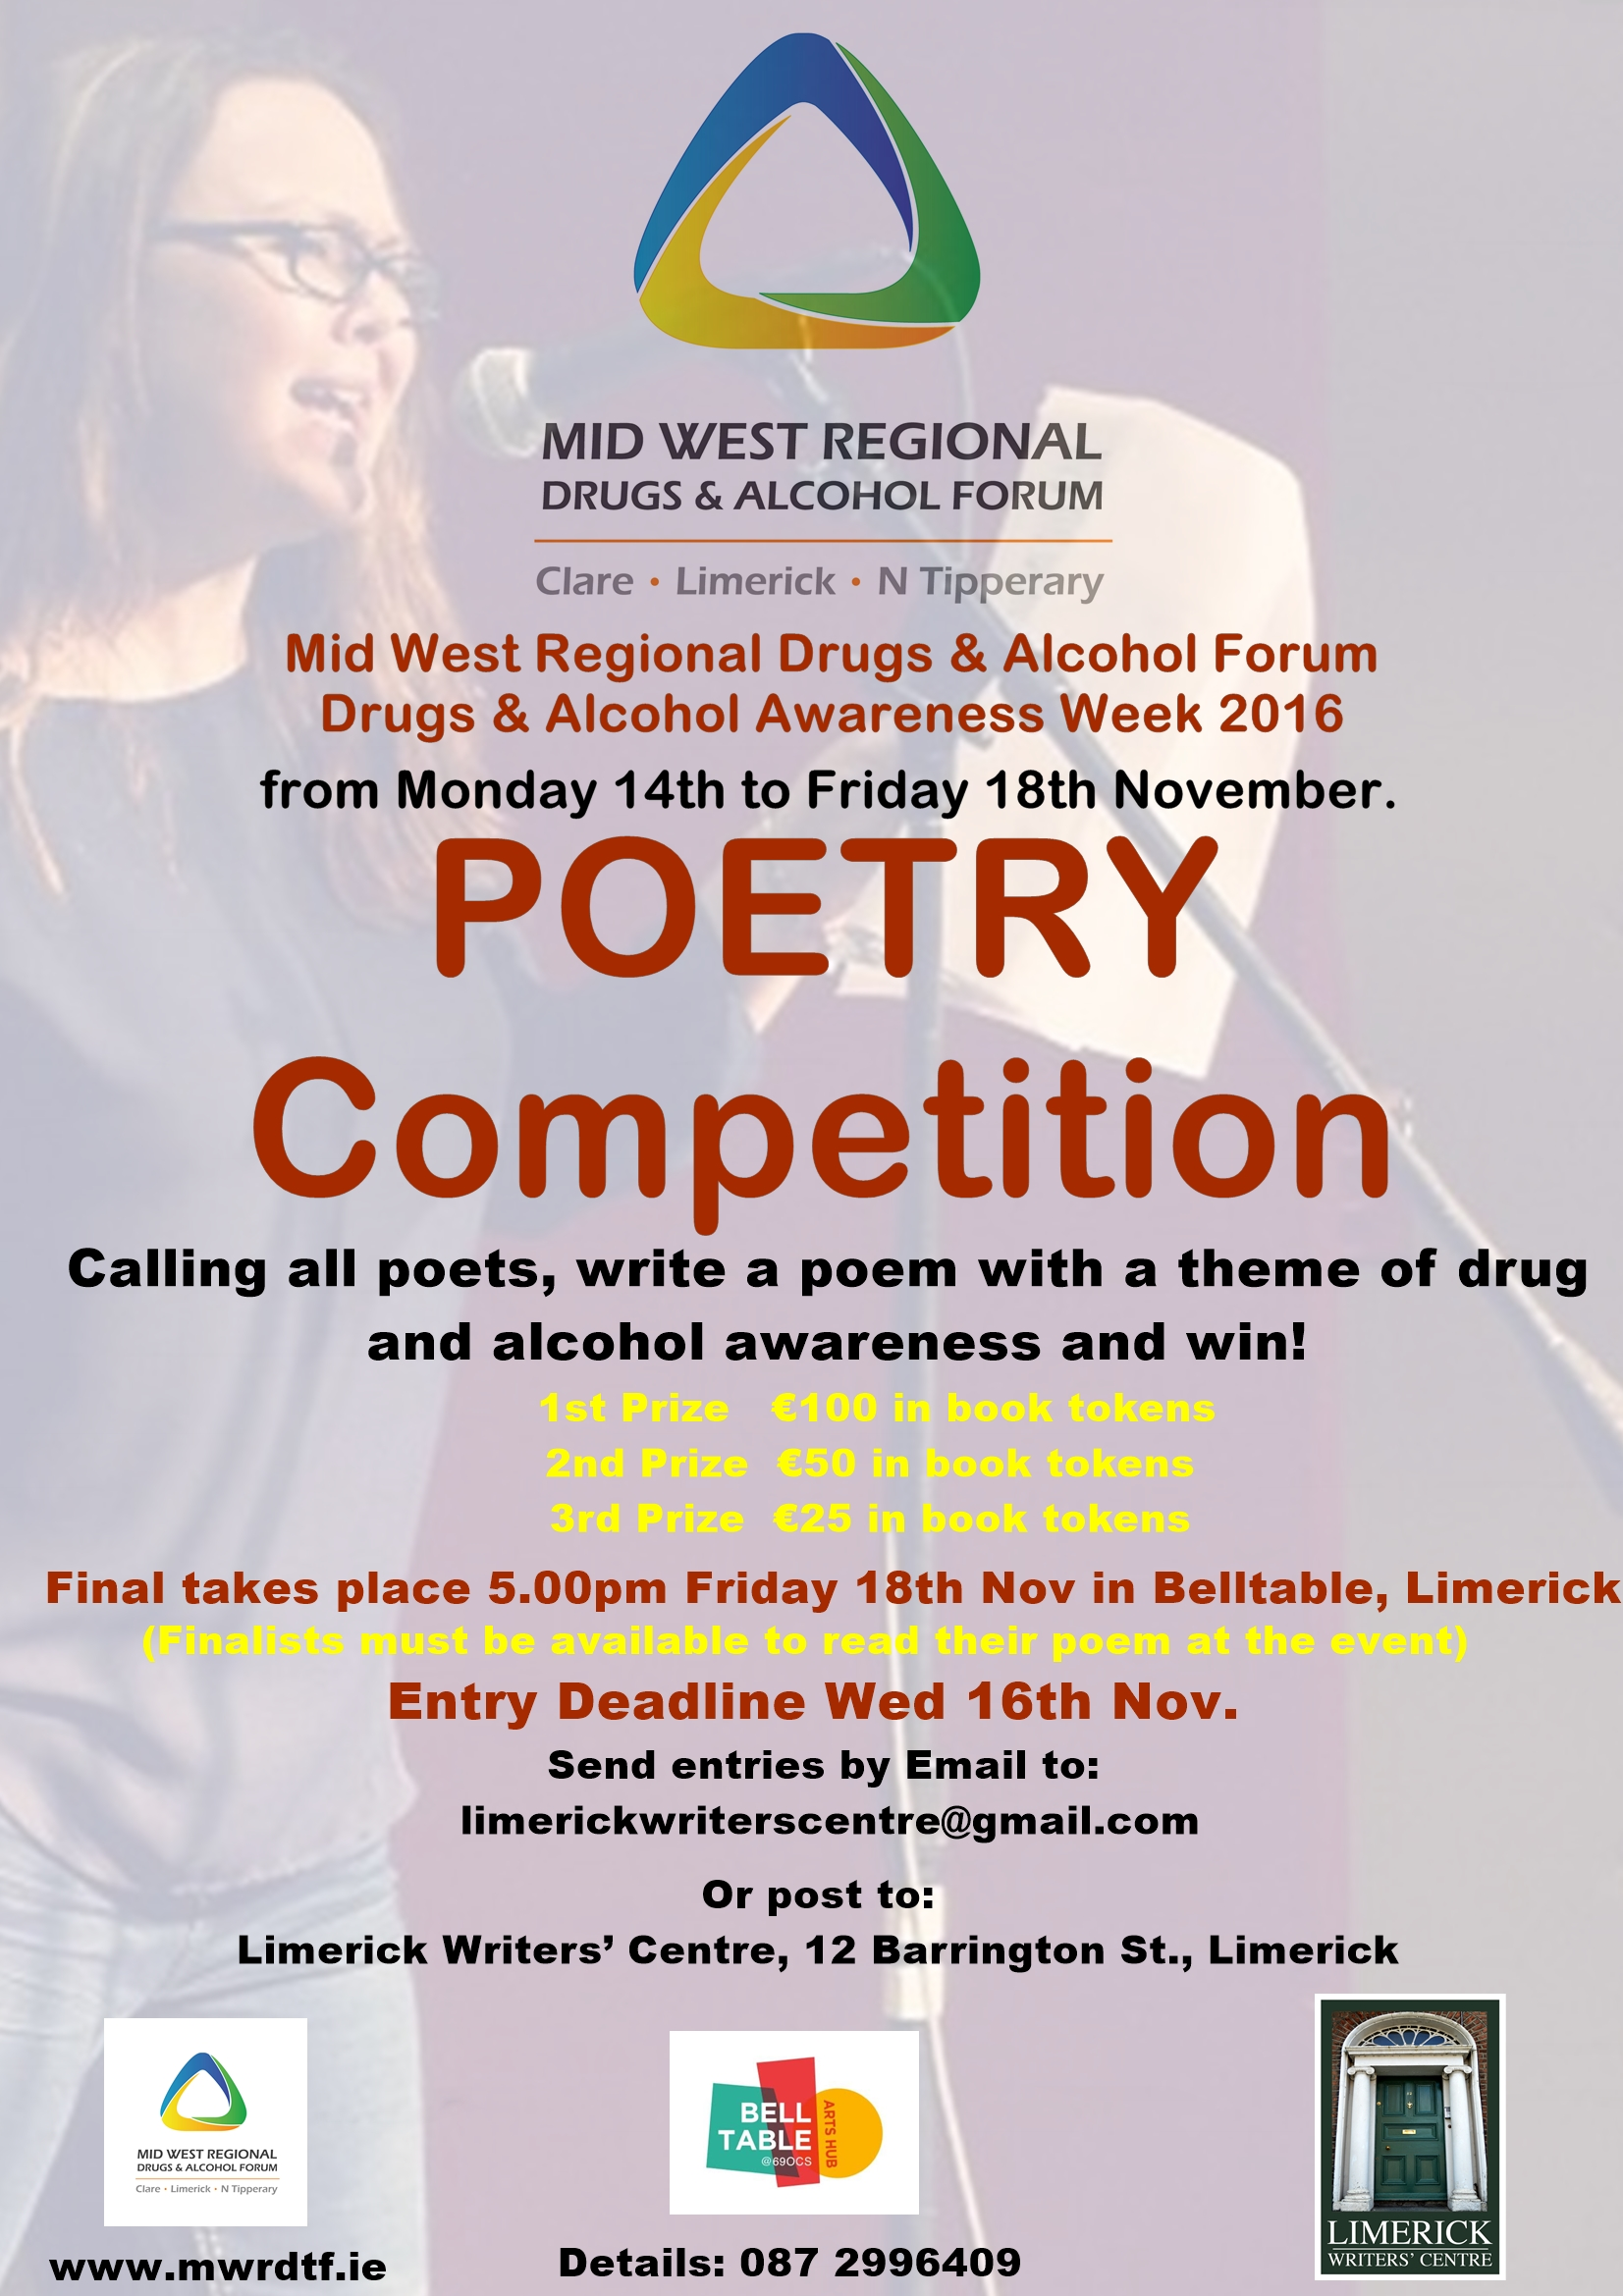 Poetry Competition Drug Alcohol Awareness week